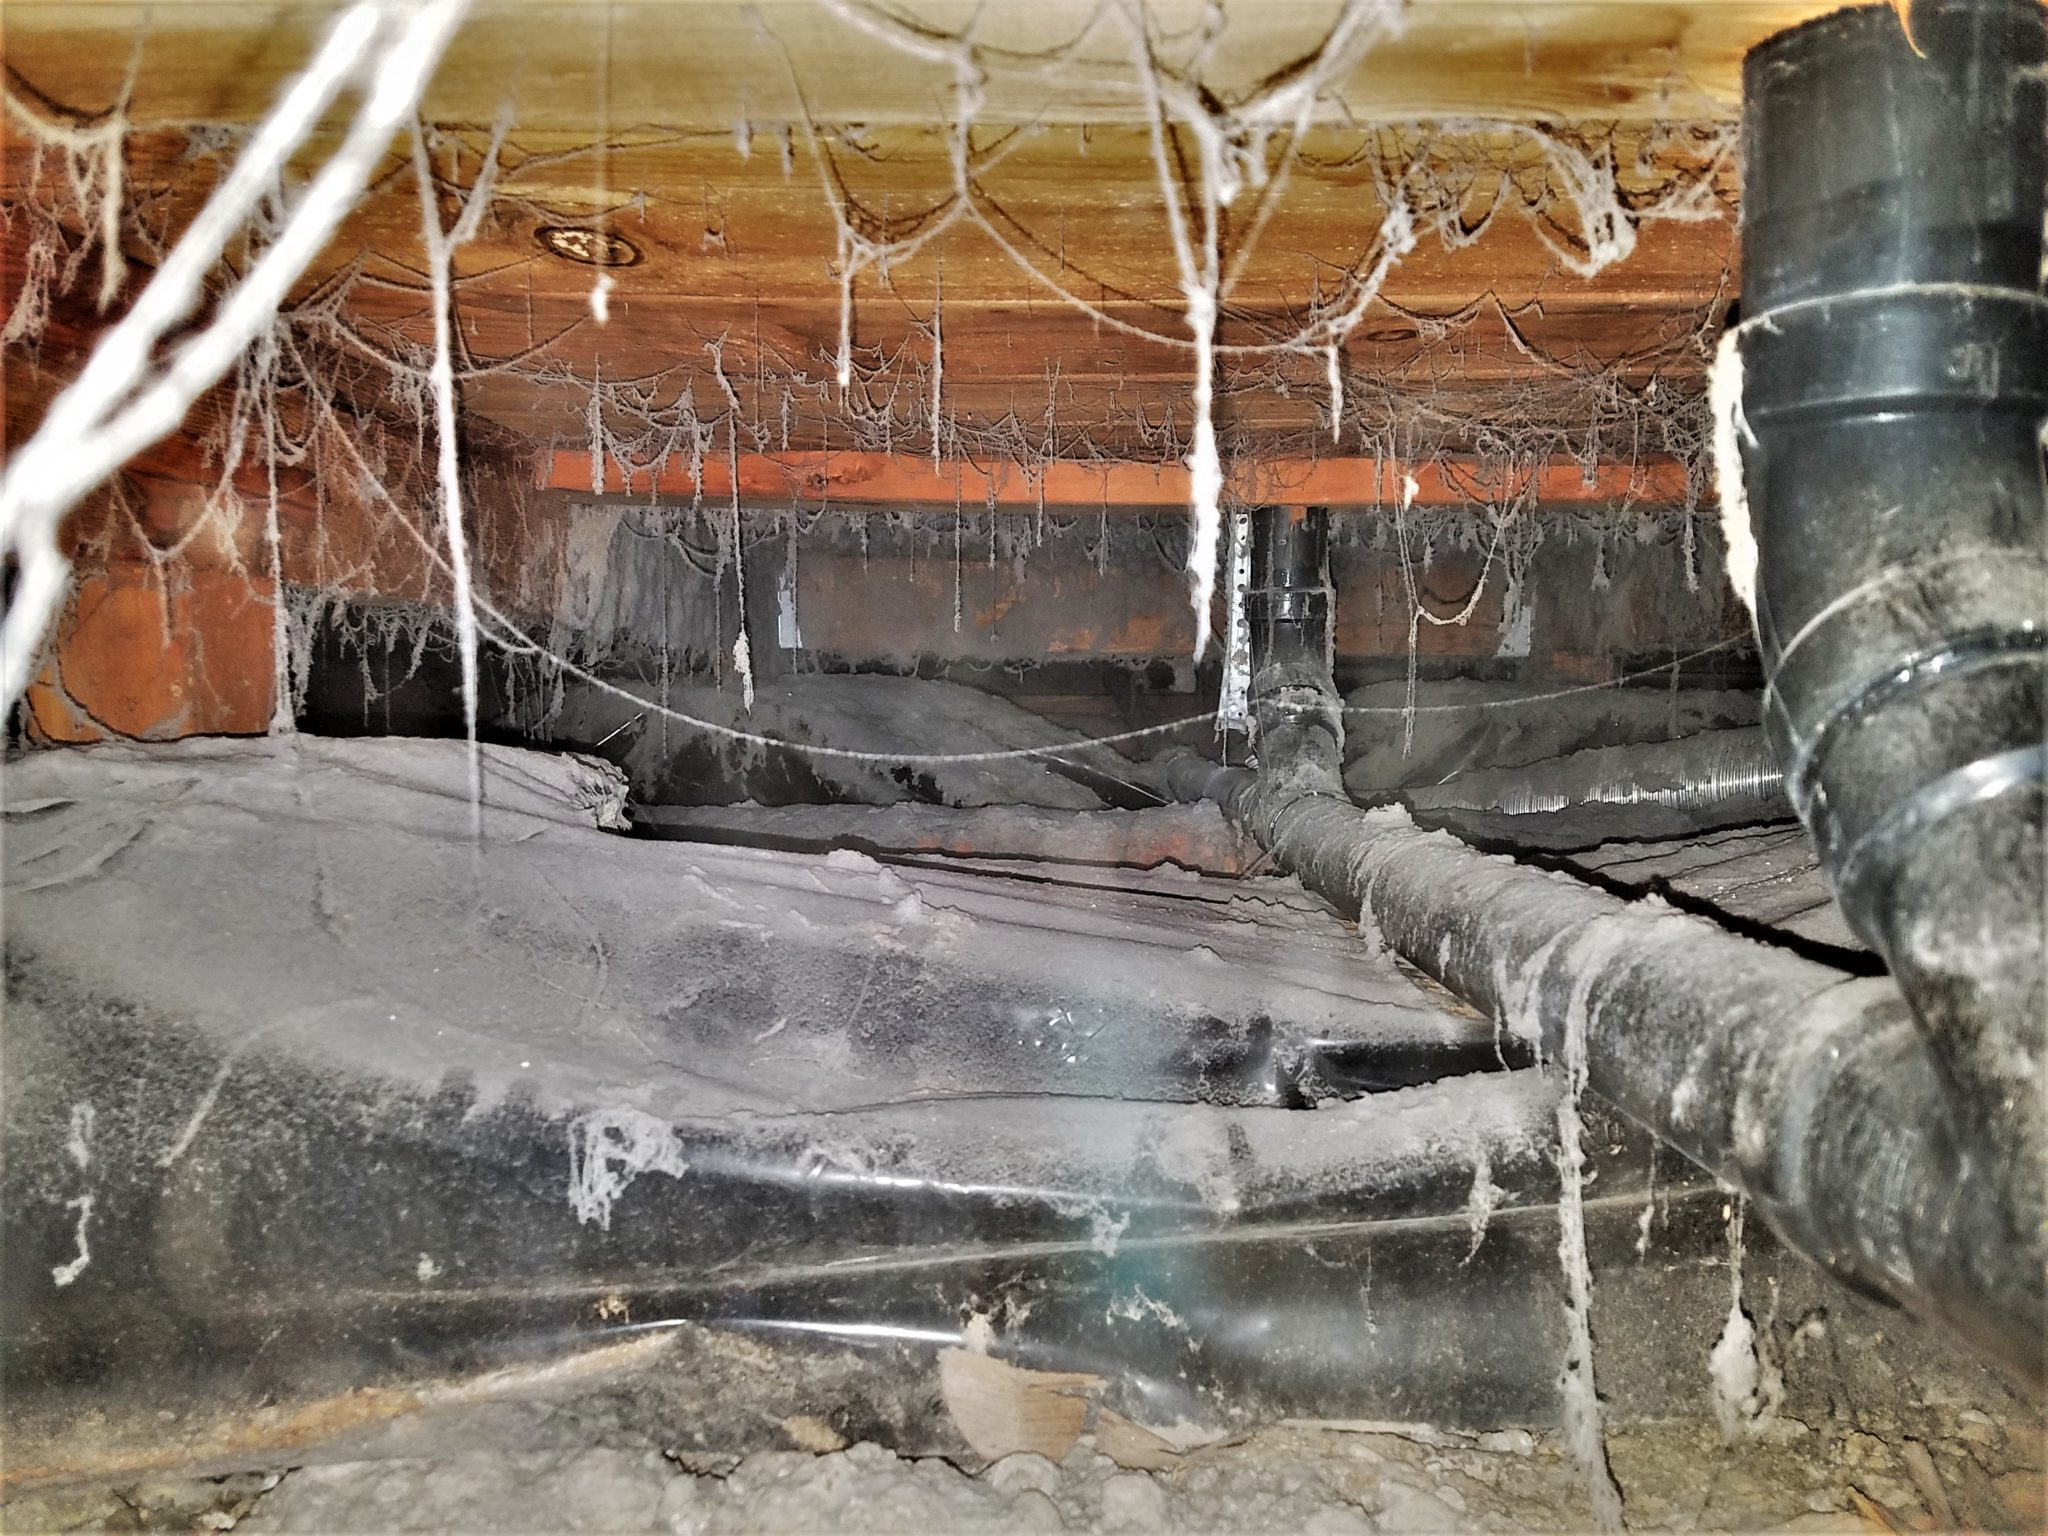 bloom crawl space services, bloom pest control, bloom home services, crawl space services portland, crawl space services